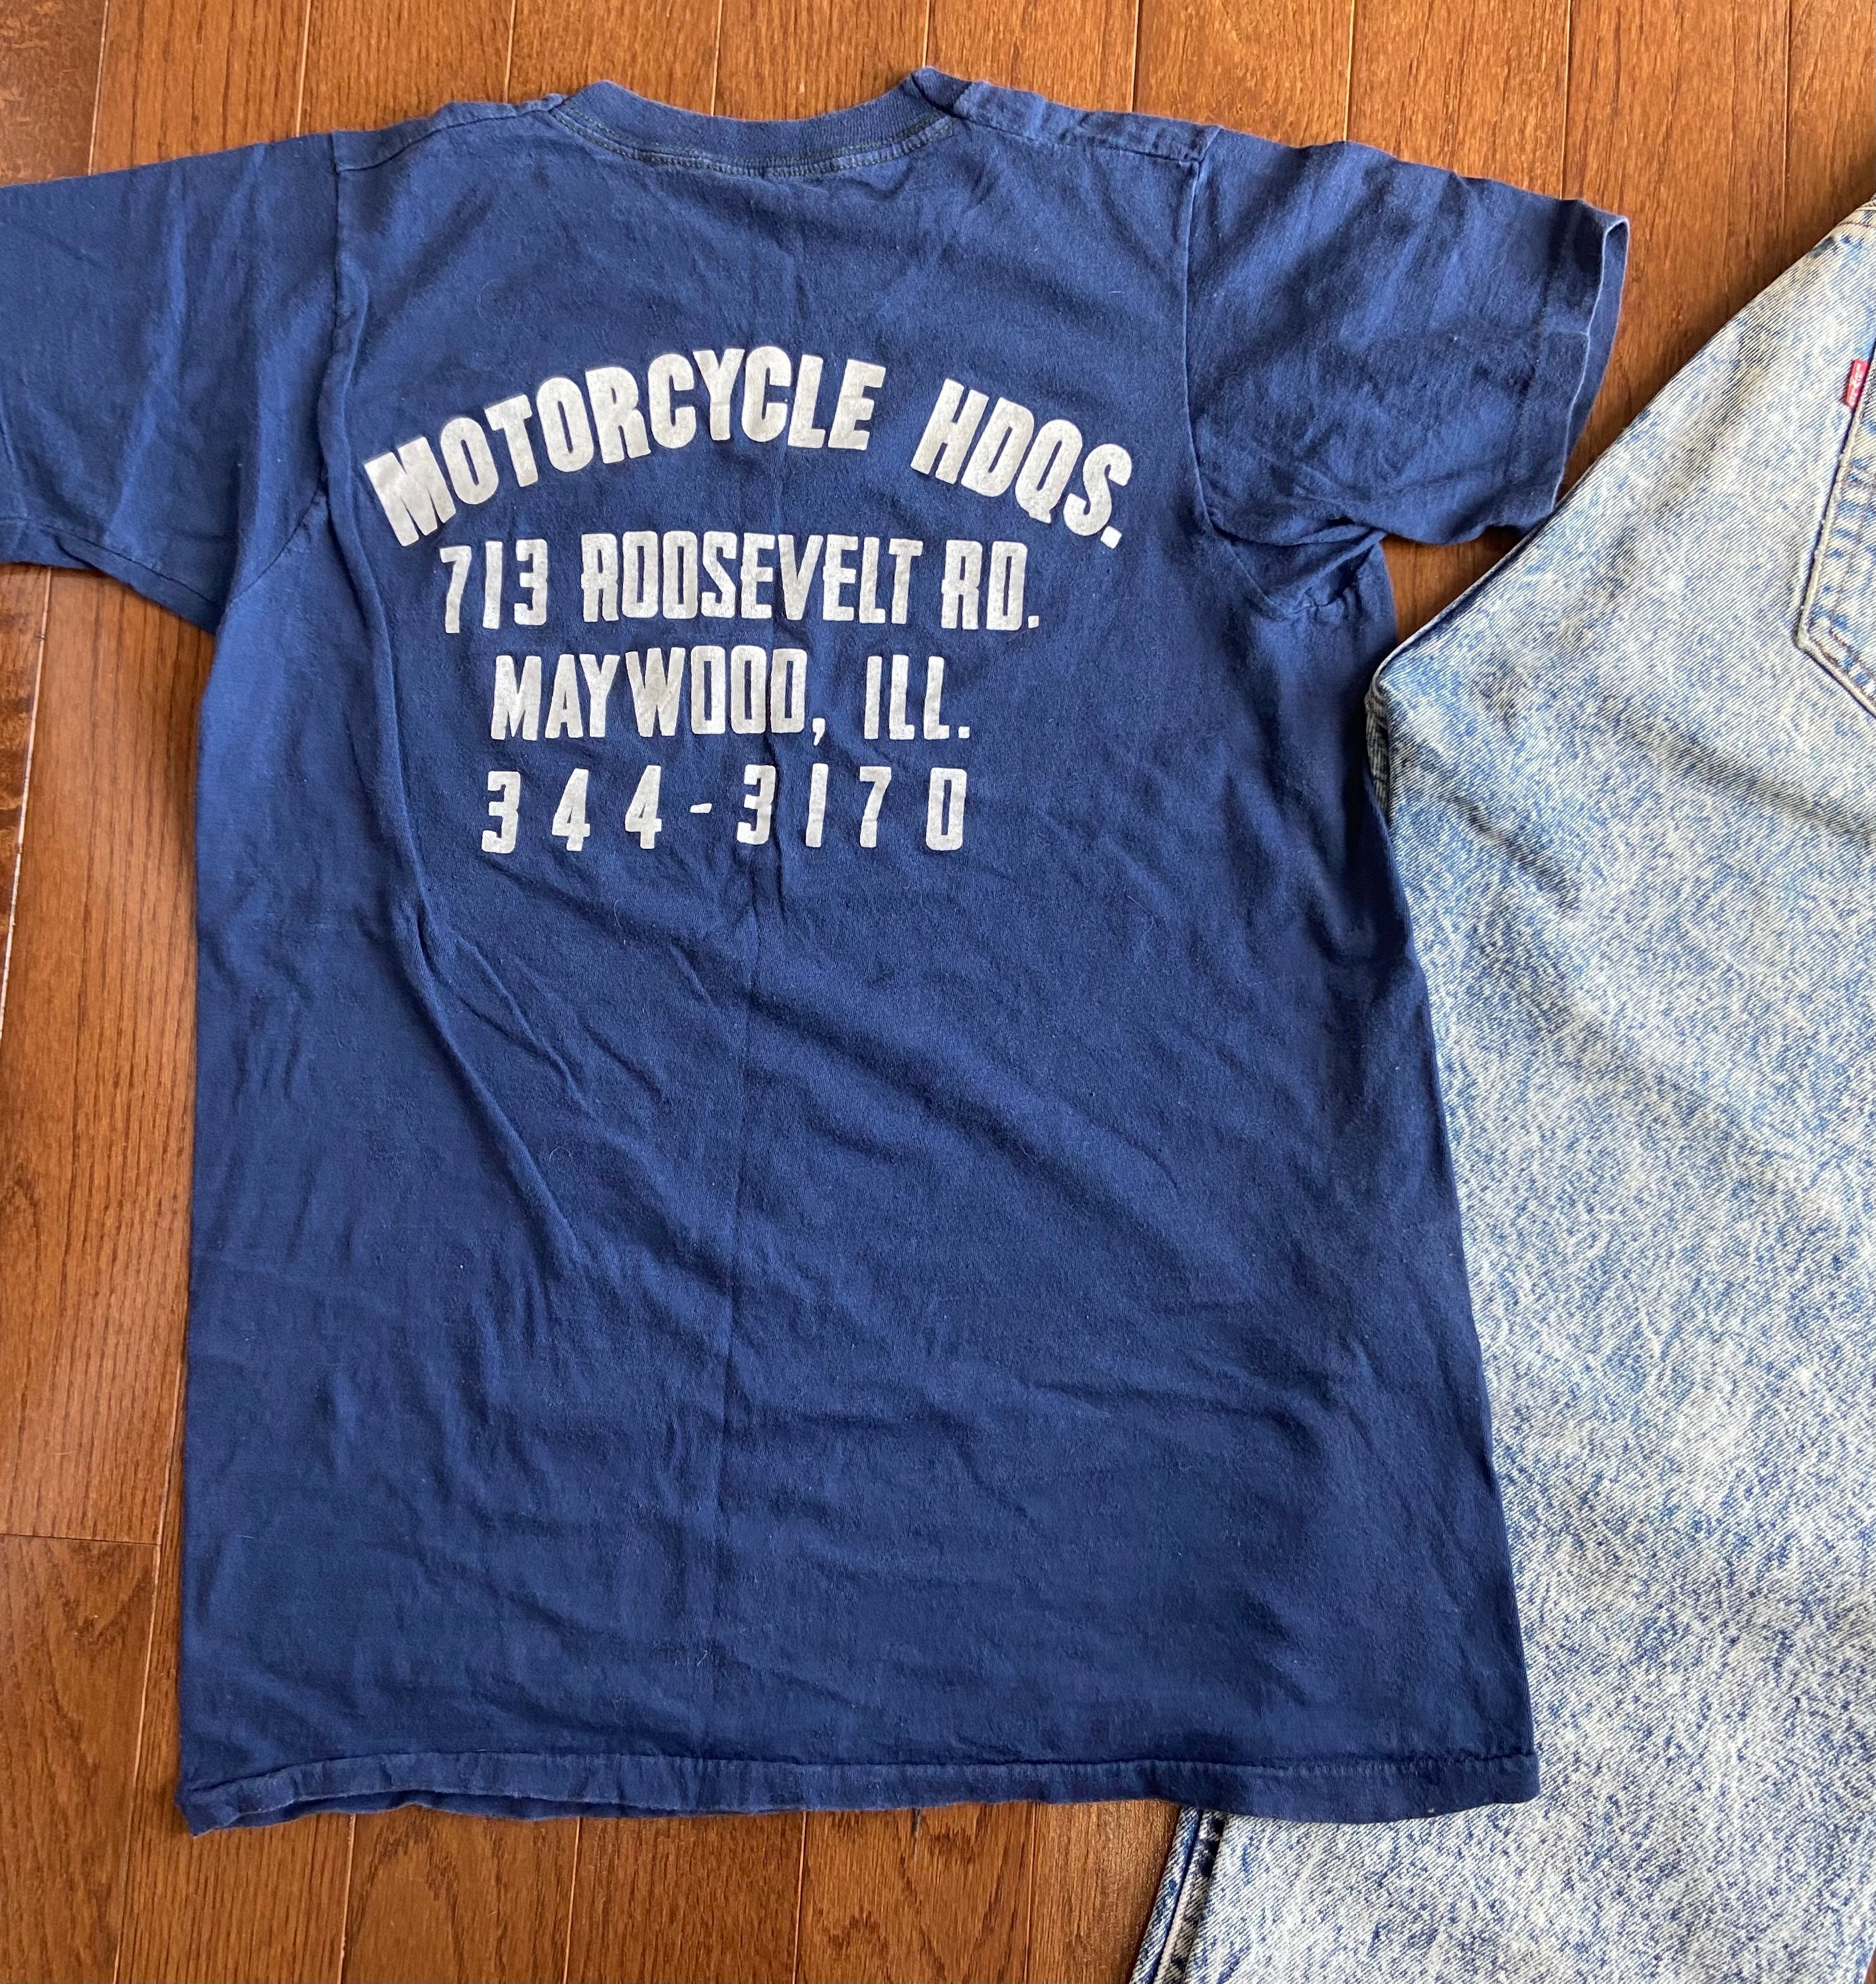 80s Tops, Shirts, T-shirts, Blouse   90s T-shirts 1980s Velvet Soft Motorcycle Tee $75.00 AT vintagedancer.com